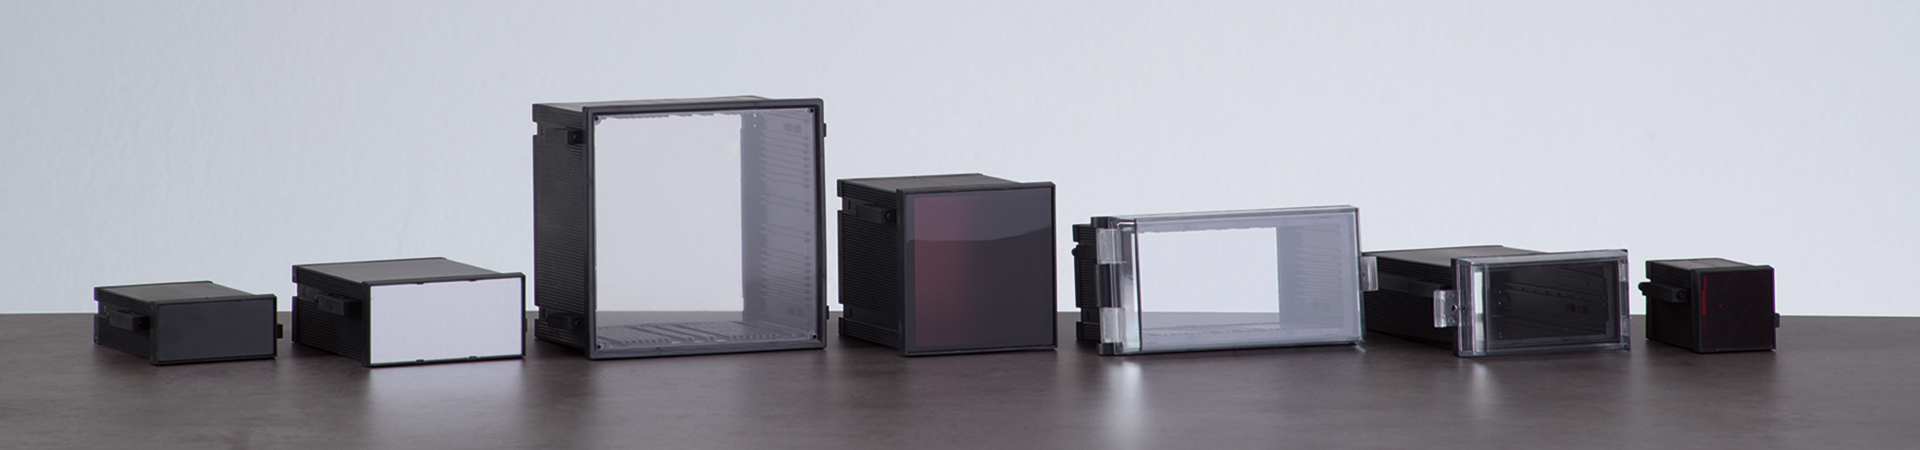 DIN-MODULAR CASES TYPE A